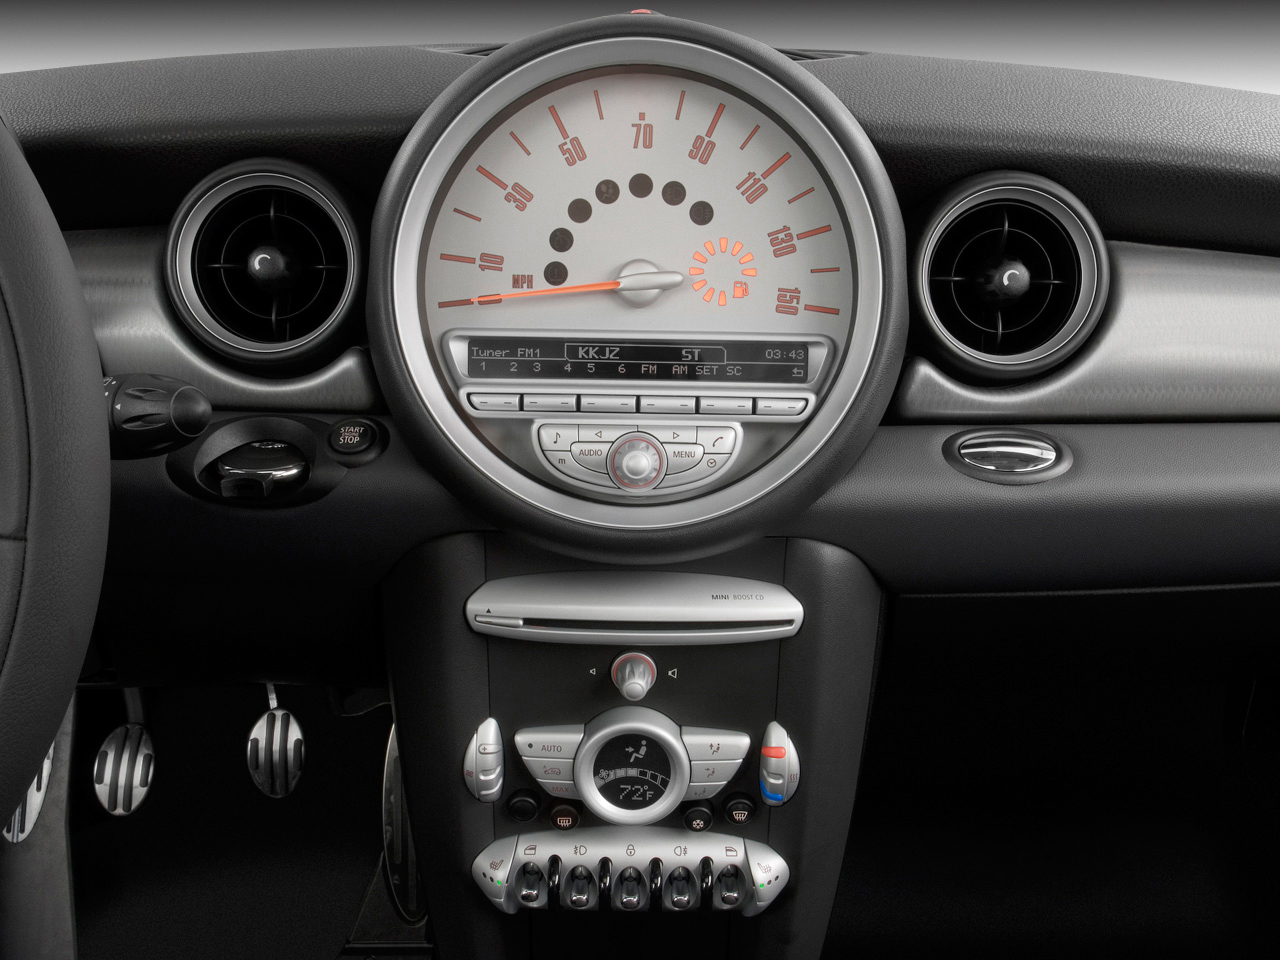 2009 Mini Cooper S Clubman Compact Hatchback Review Remote Starter Diagram 51 75